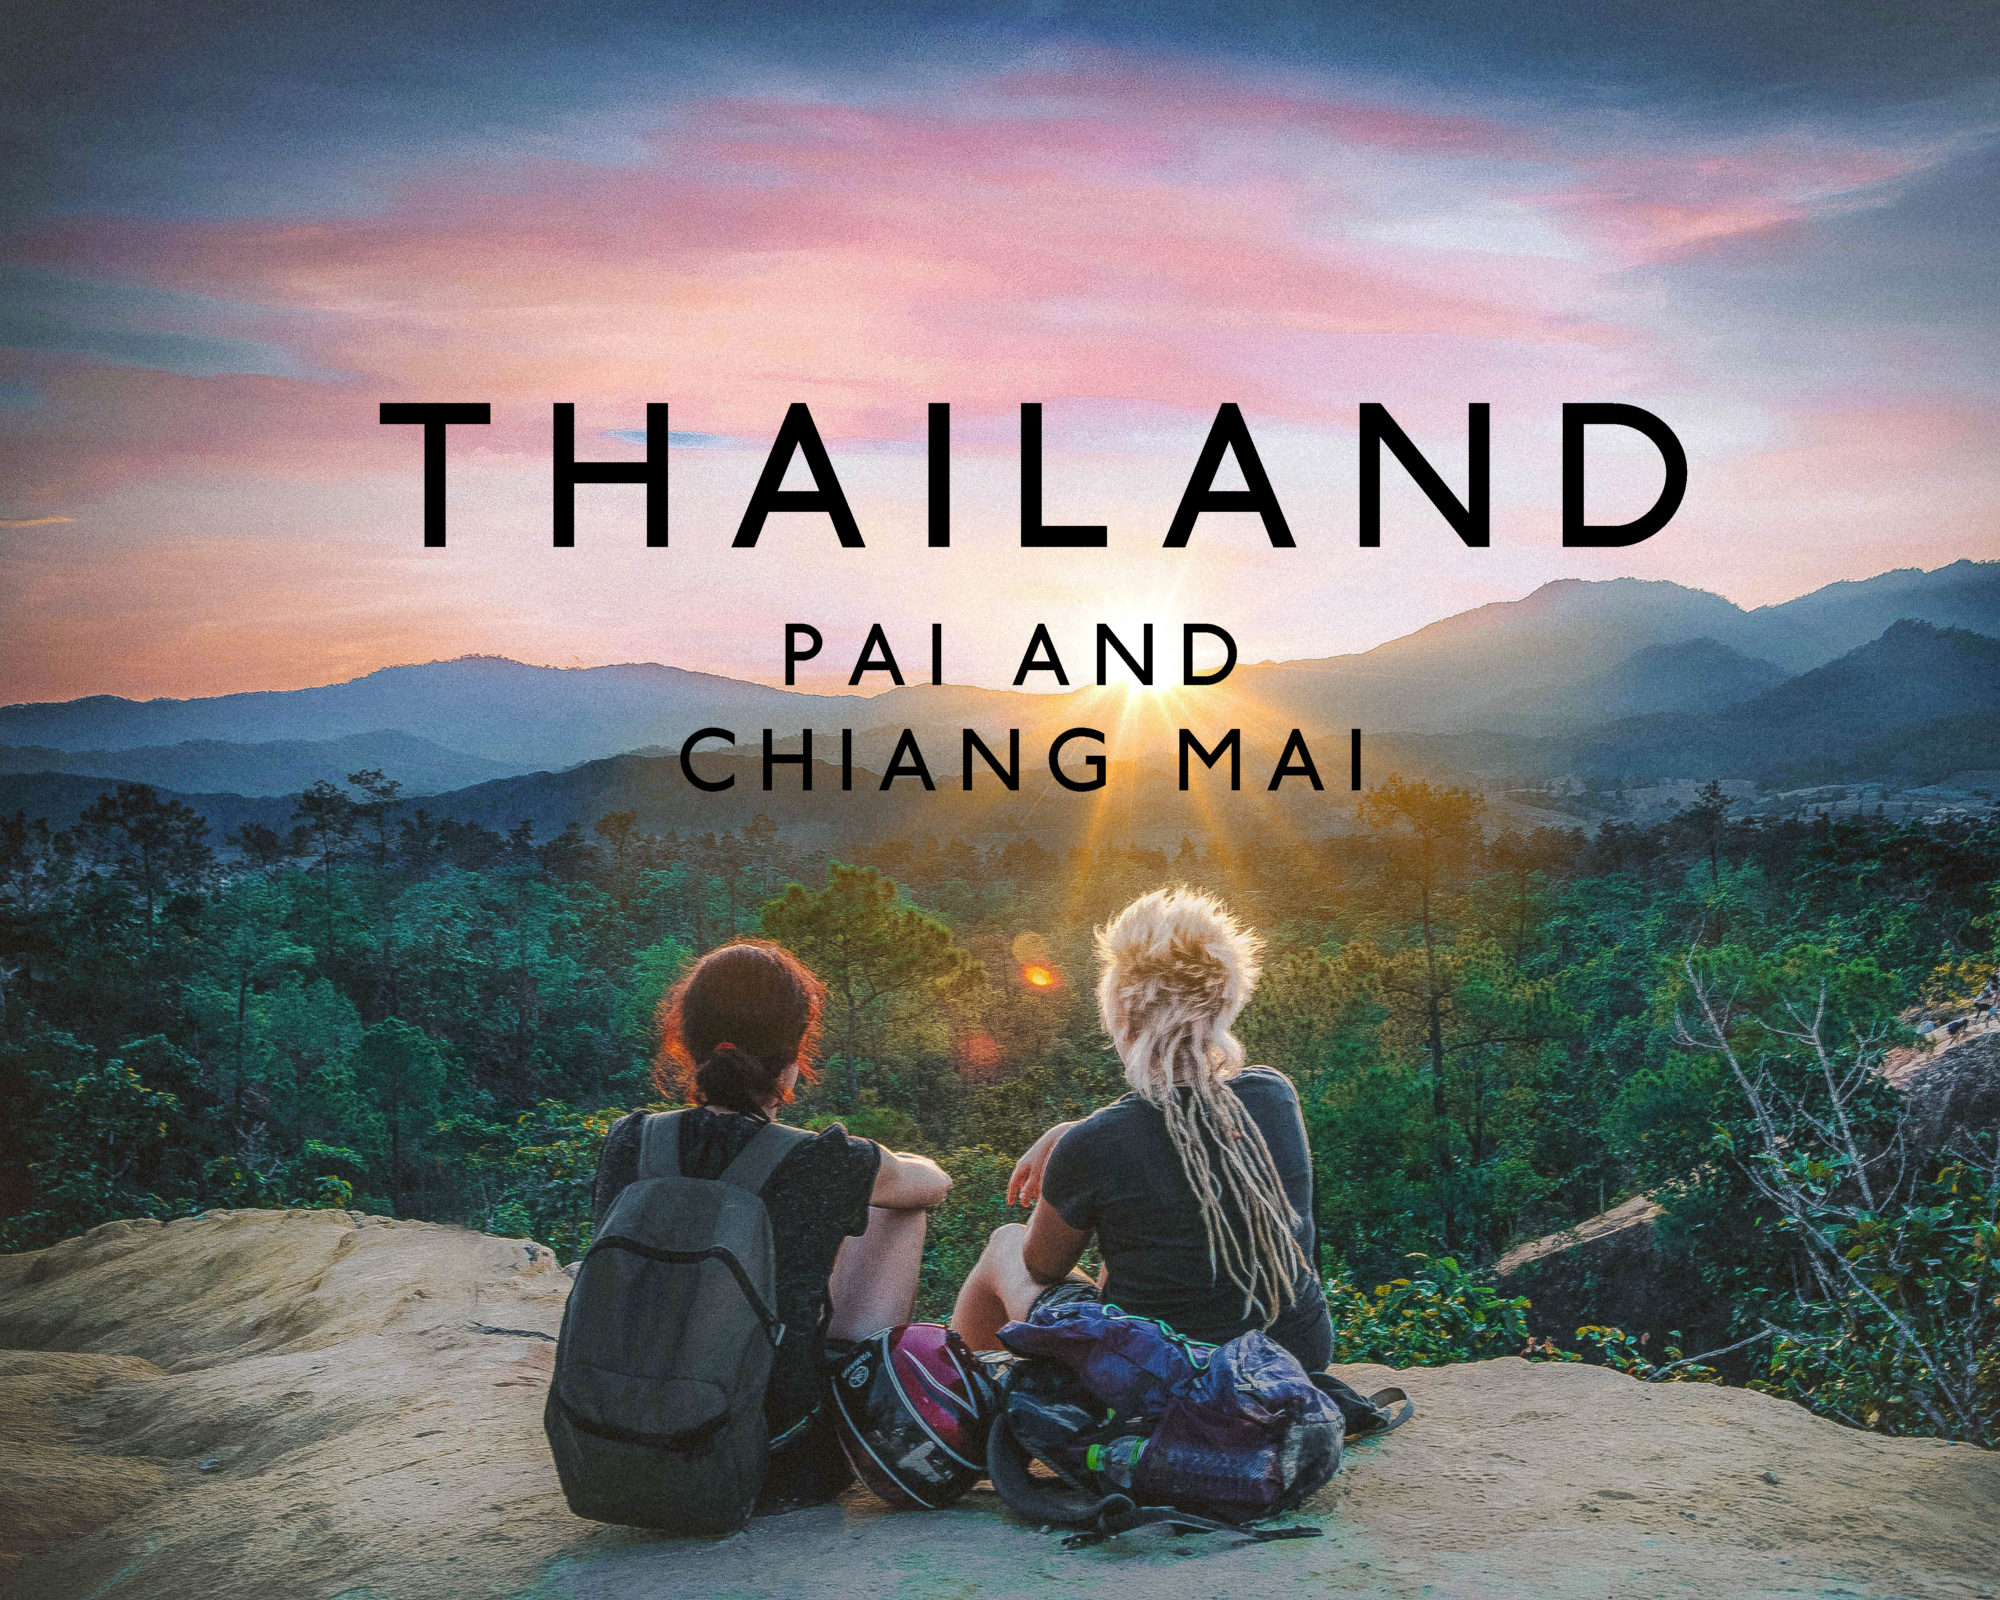 watching the sunset in pai canyon north thailand love culture nature beauty